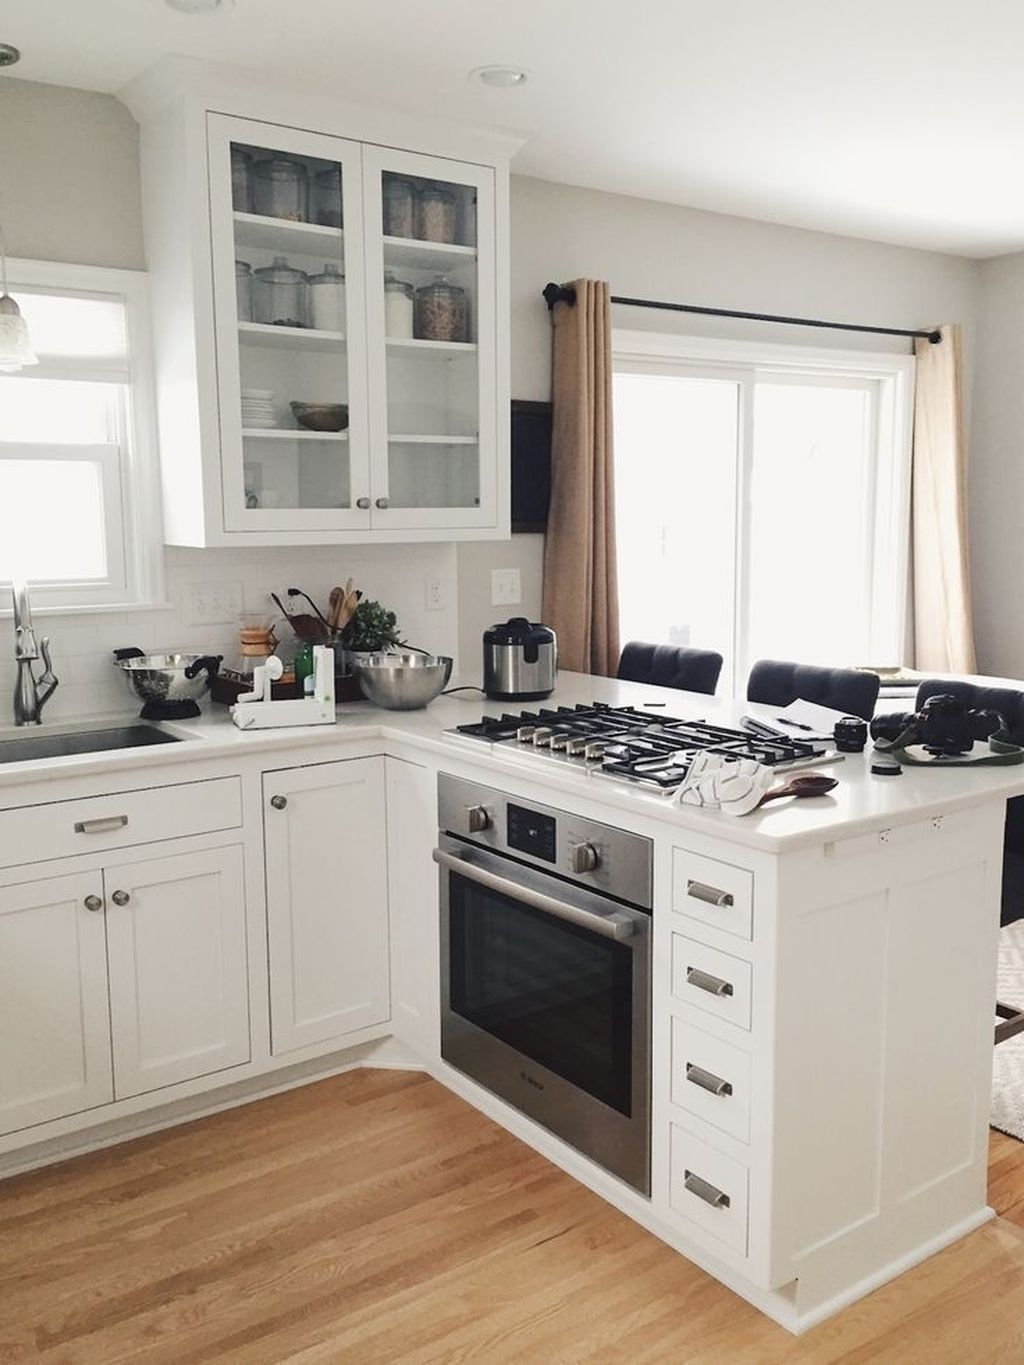 Simple Kitchen Remodeling Ideas On A Budget27